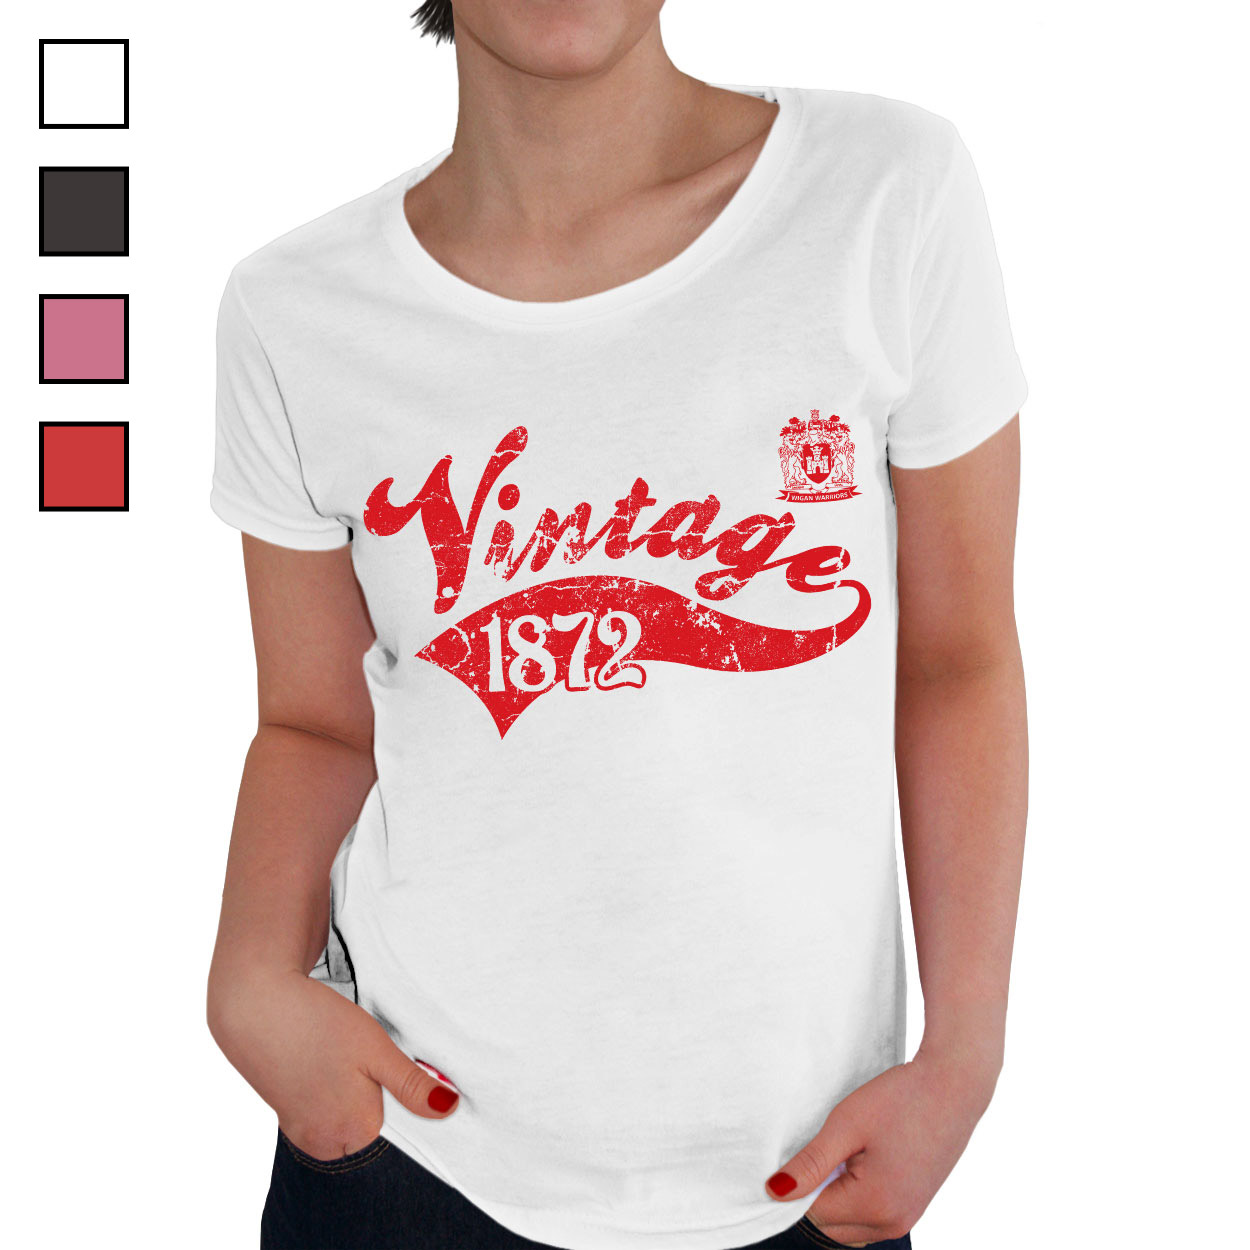 Wigan Warriors Ladies Vintage T-Shirt